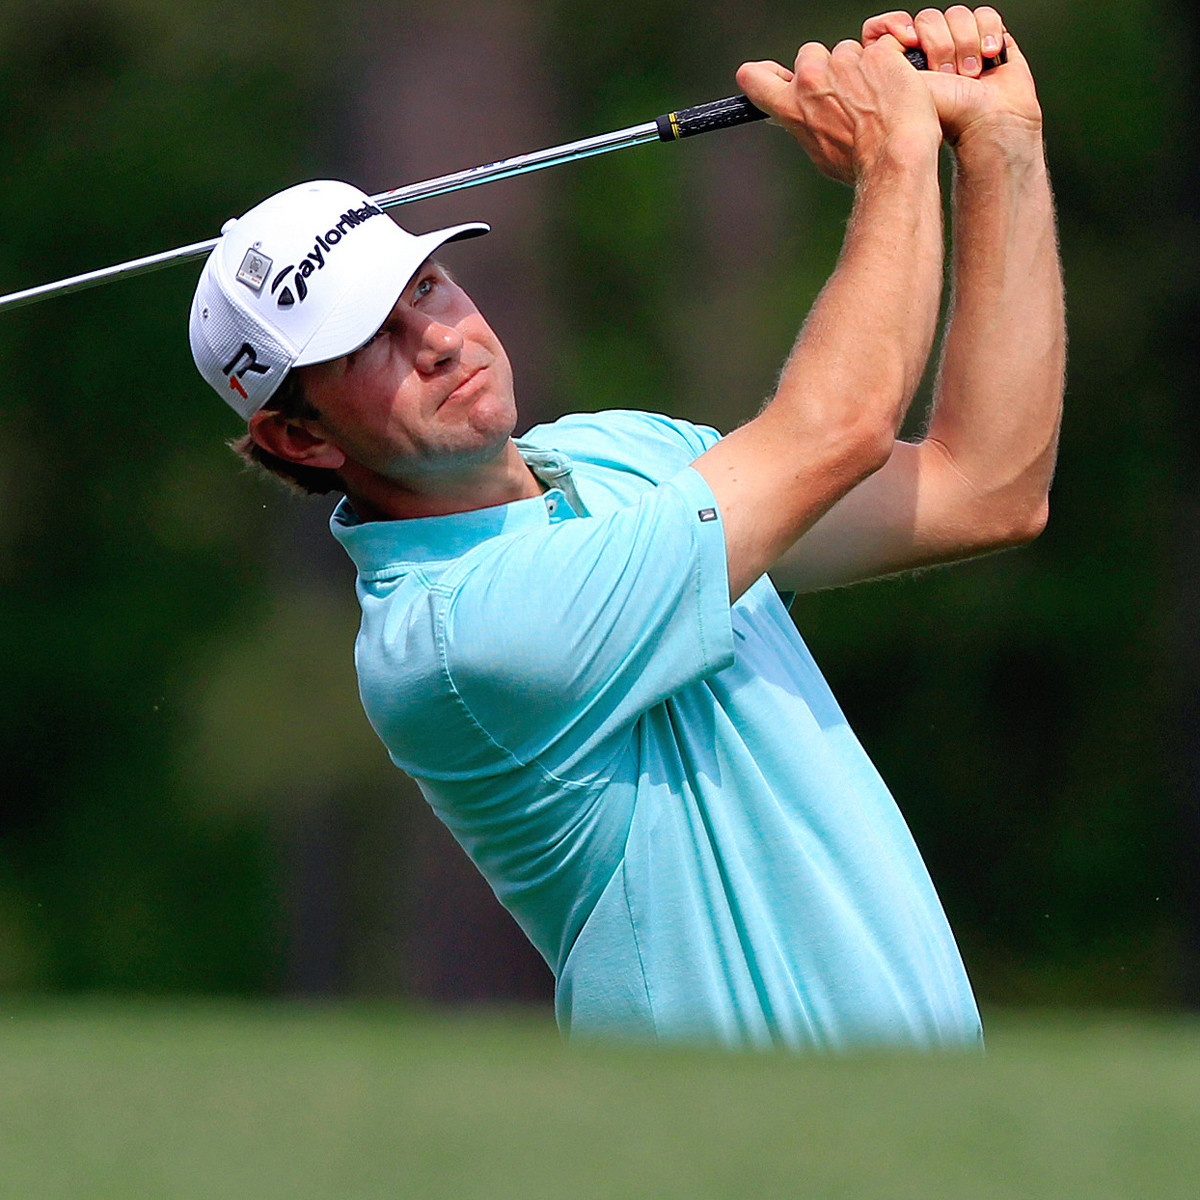 Glover Shoots Record 61 in Greensboro